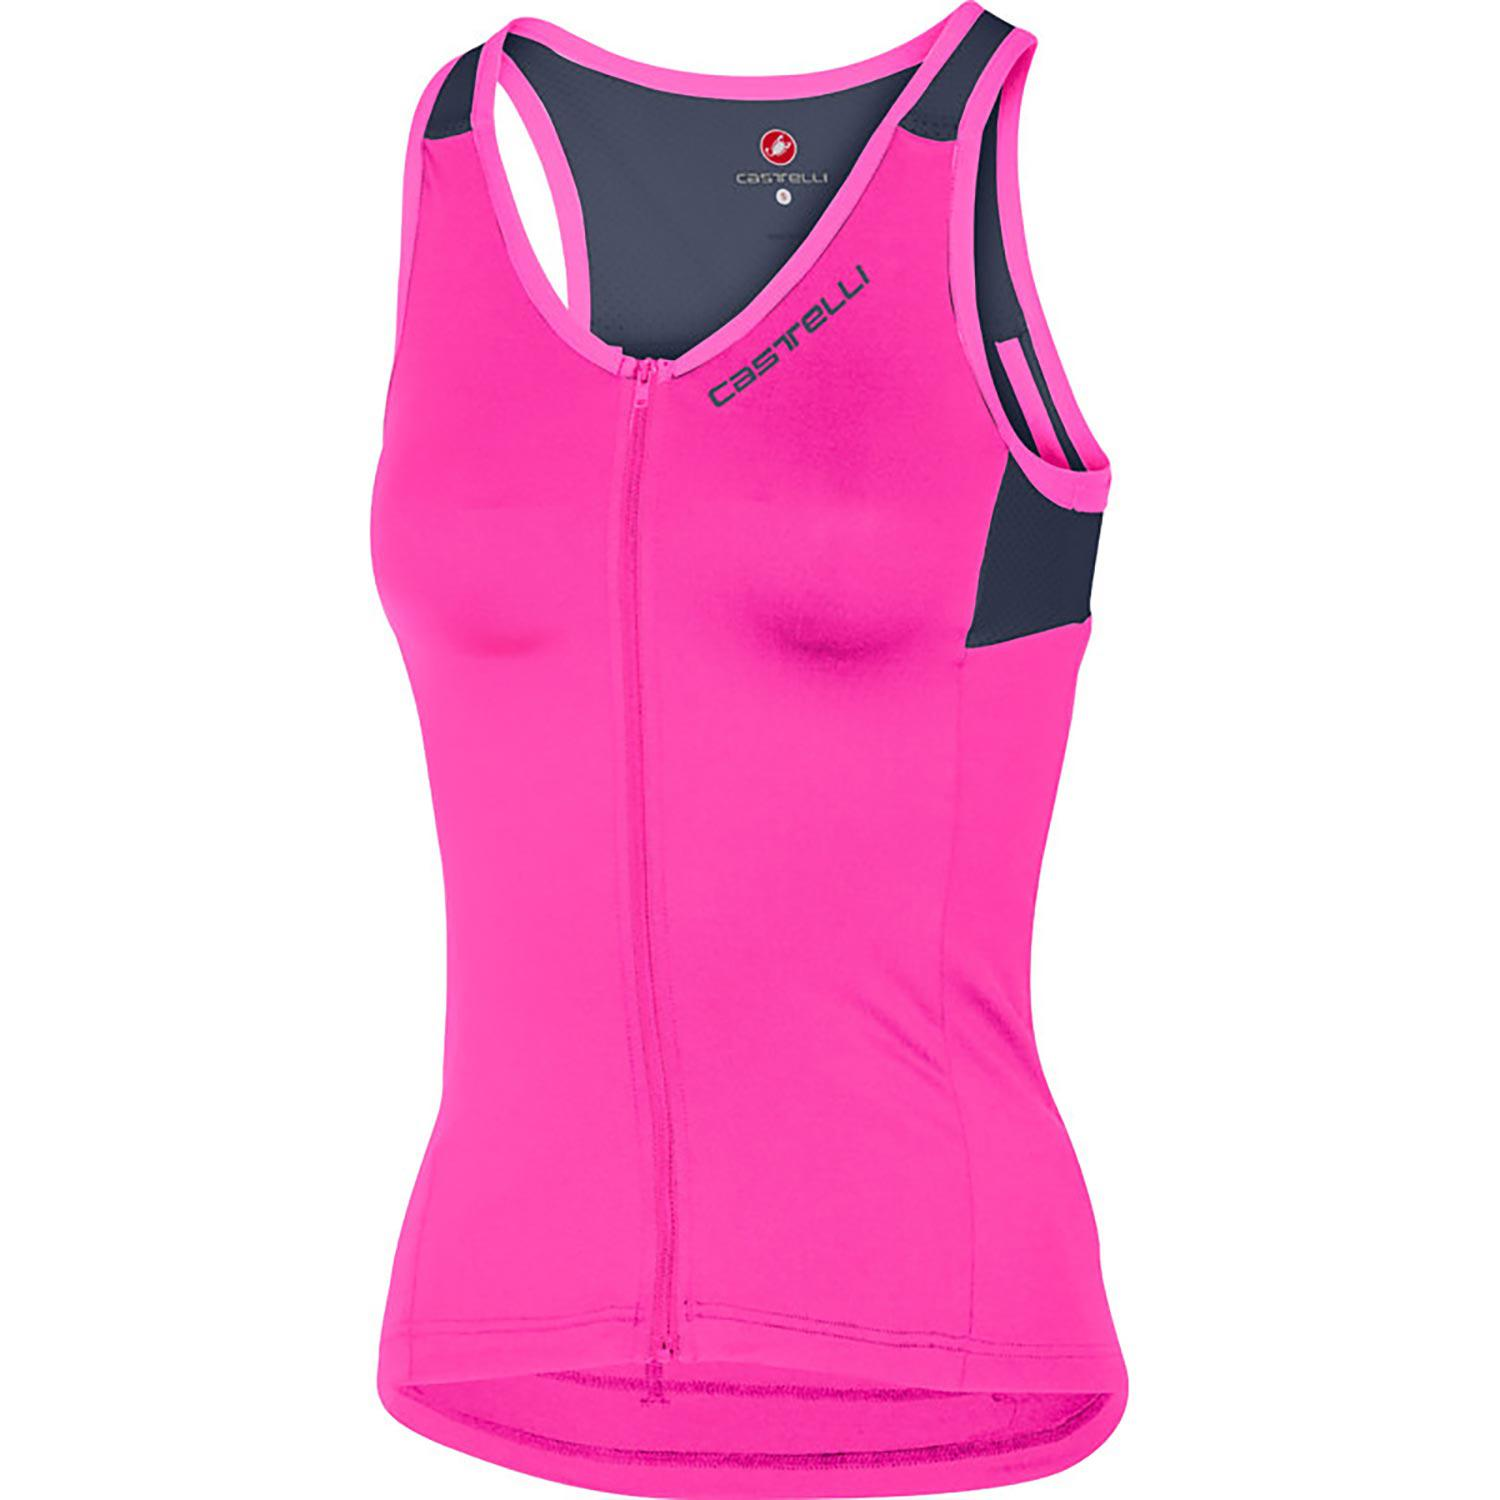 Castelli-Castelli Solare Top-Pink Fluo/Dark Steel Blue-XS-CS170640221-saddleback-elite-performance-cycling